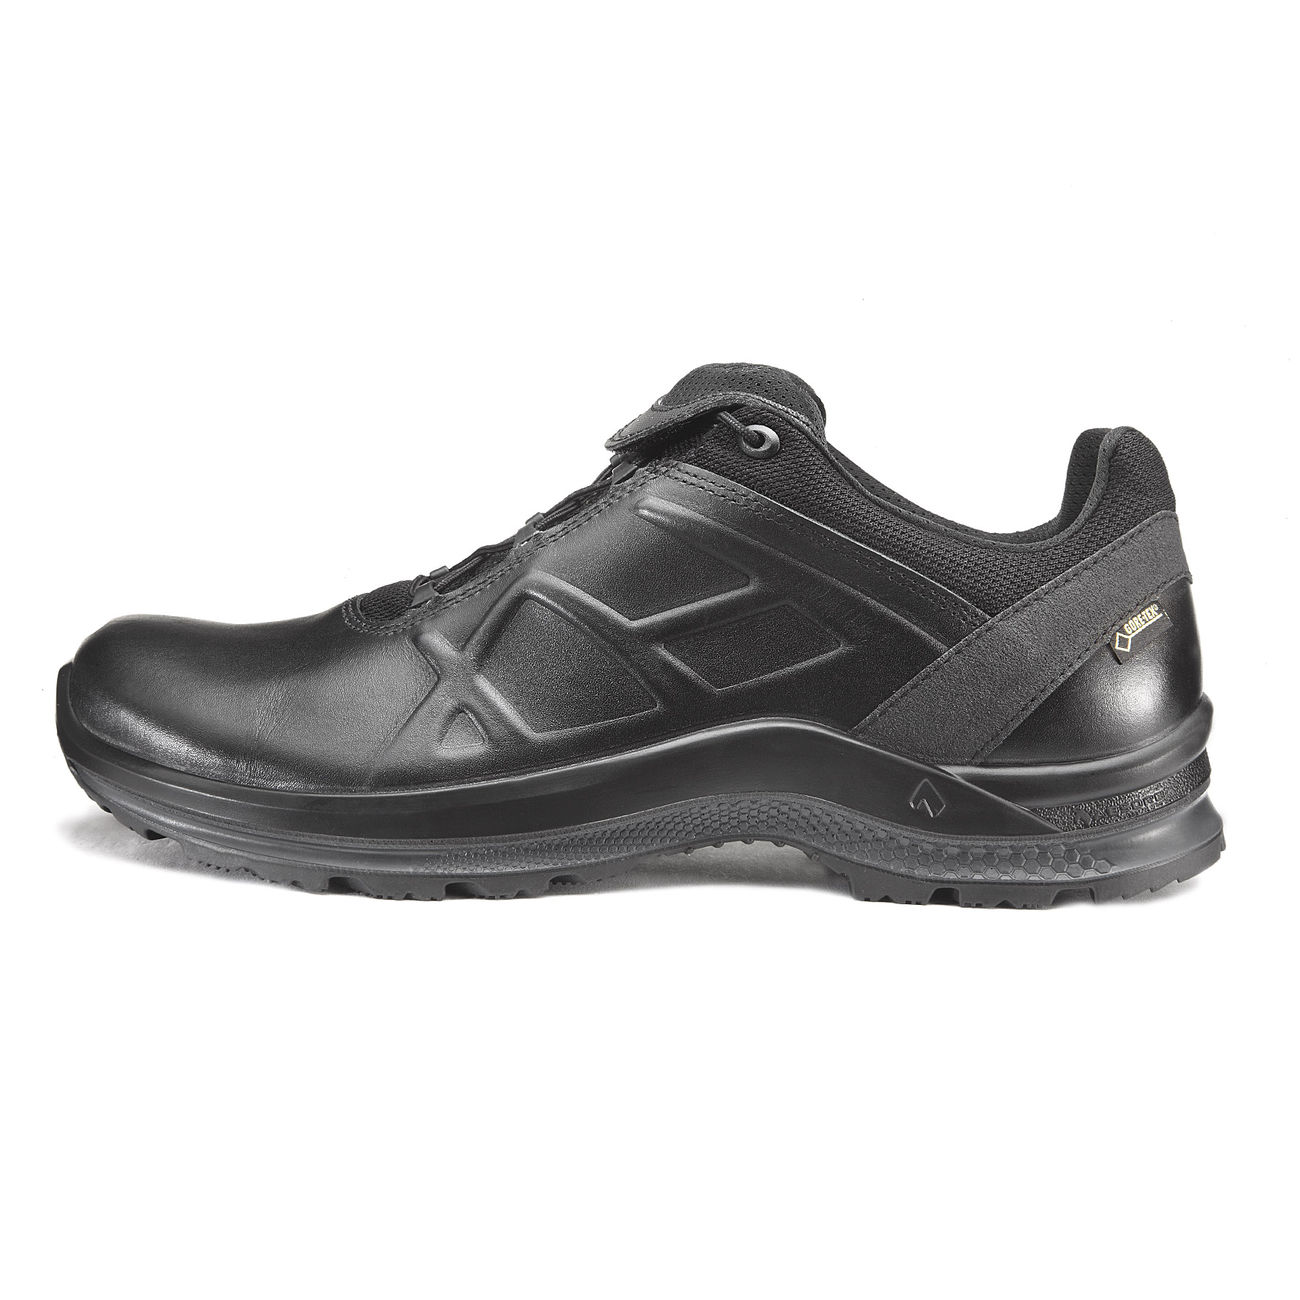 Haix Halbschuh Black Eagle Tactical 2.0 GTX Low schwarz 0